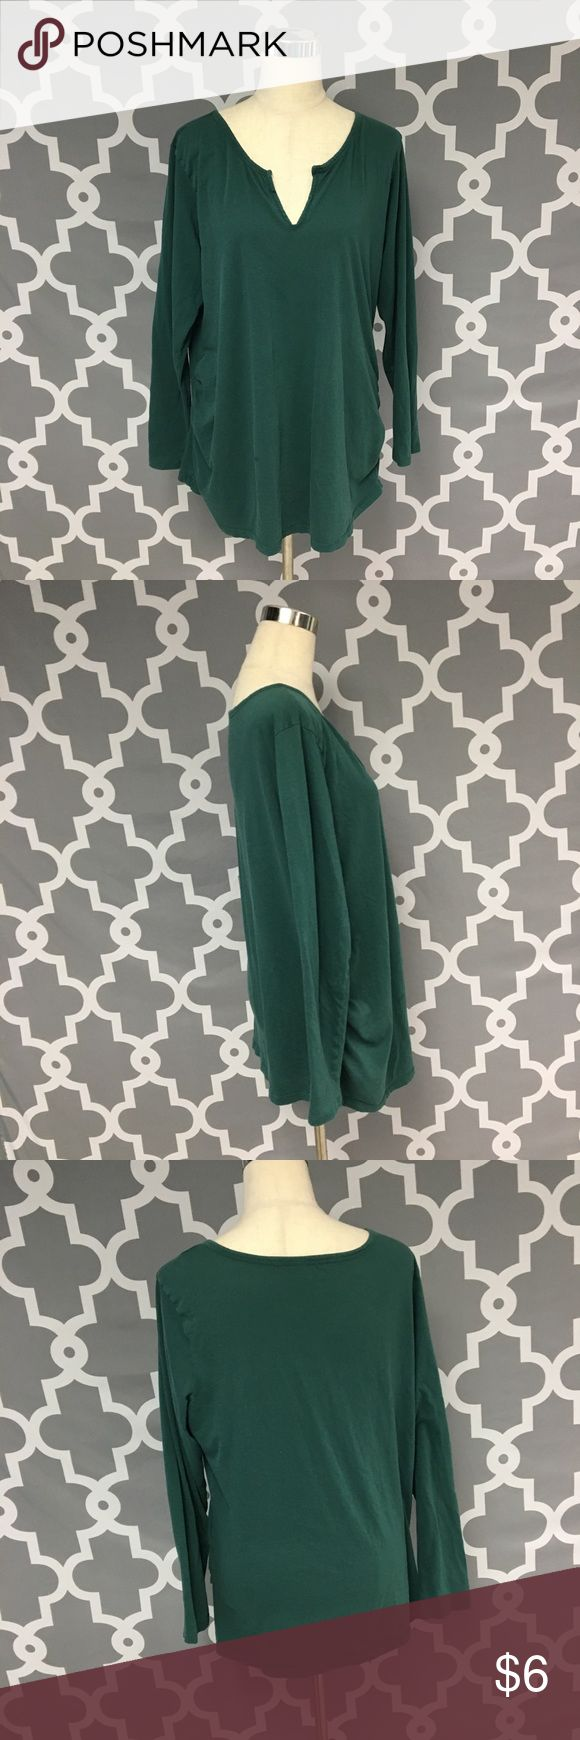 Old Navy Maternity Top Old Navy Maternity green long sleeve top women's maternity size XL good used condition one stain on front of top as pictured   🔘Measurements:       Pit to Pit: 22.5 inches       Shoulder to Hem: 30 inches                              Inventory:    ⭐️ 15% Off All Bundles! 🛍    💞Thanks for stopping by! 😘 Old Navy Tops